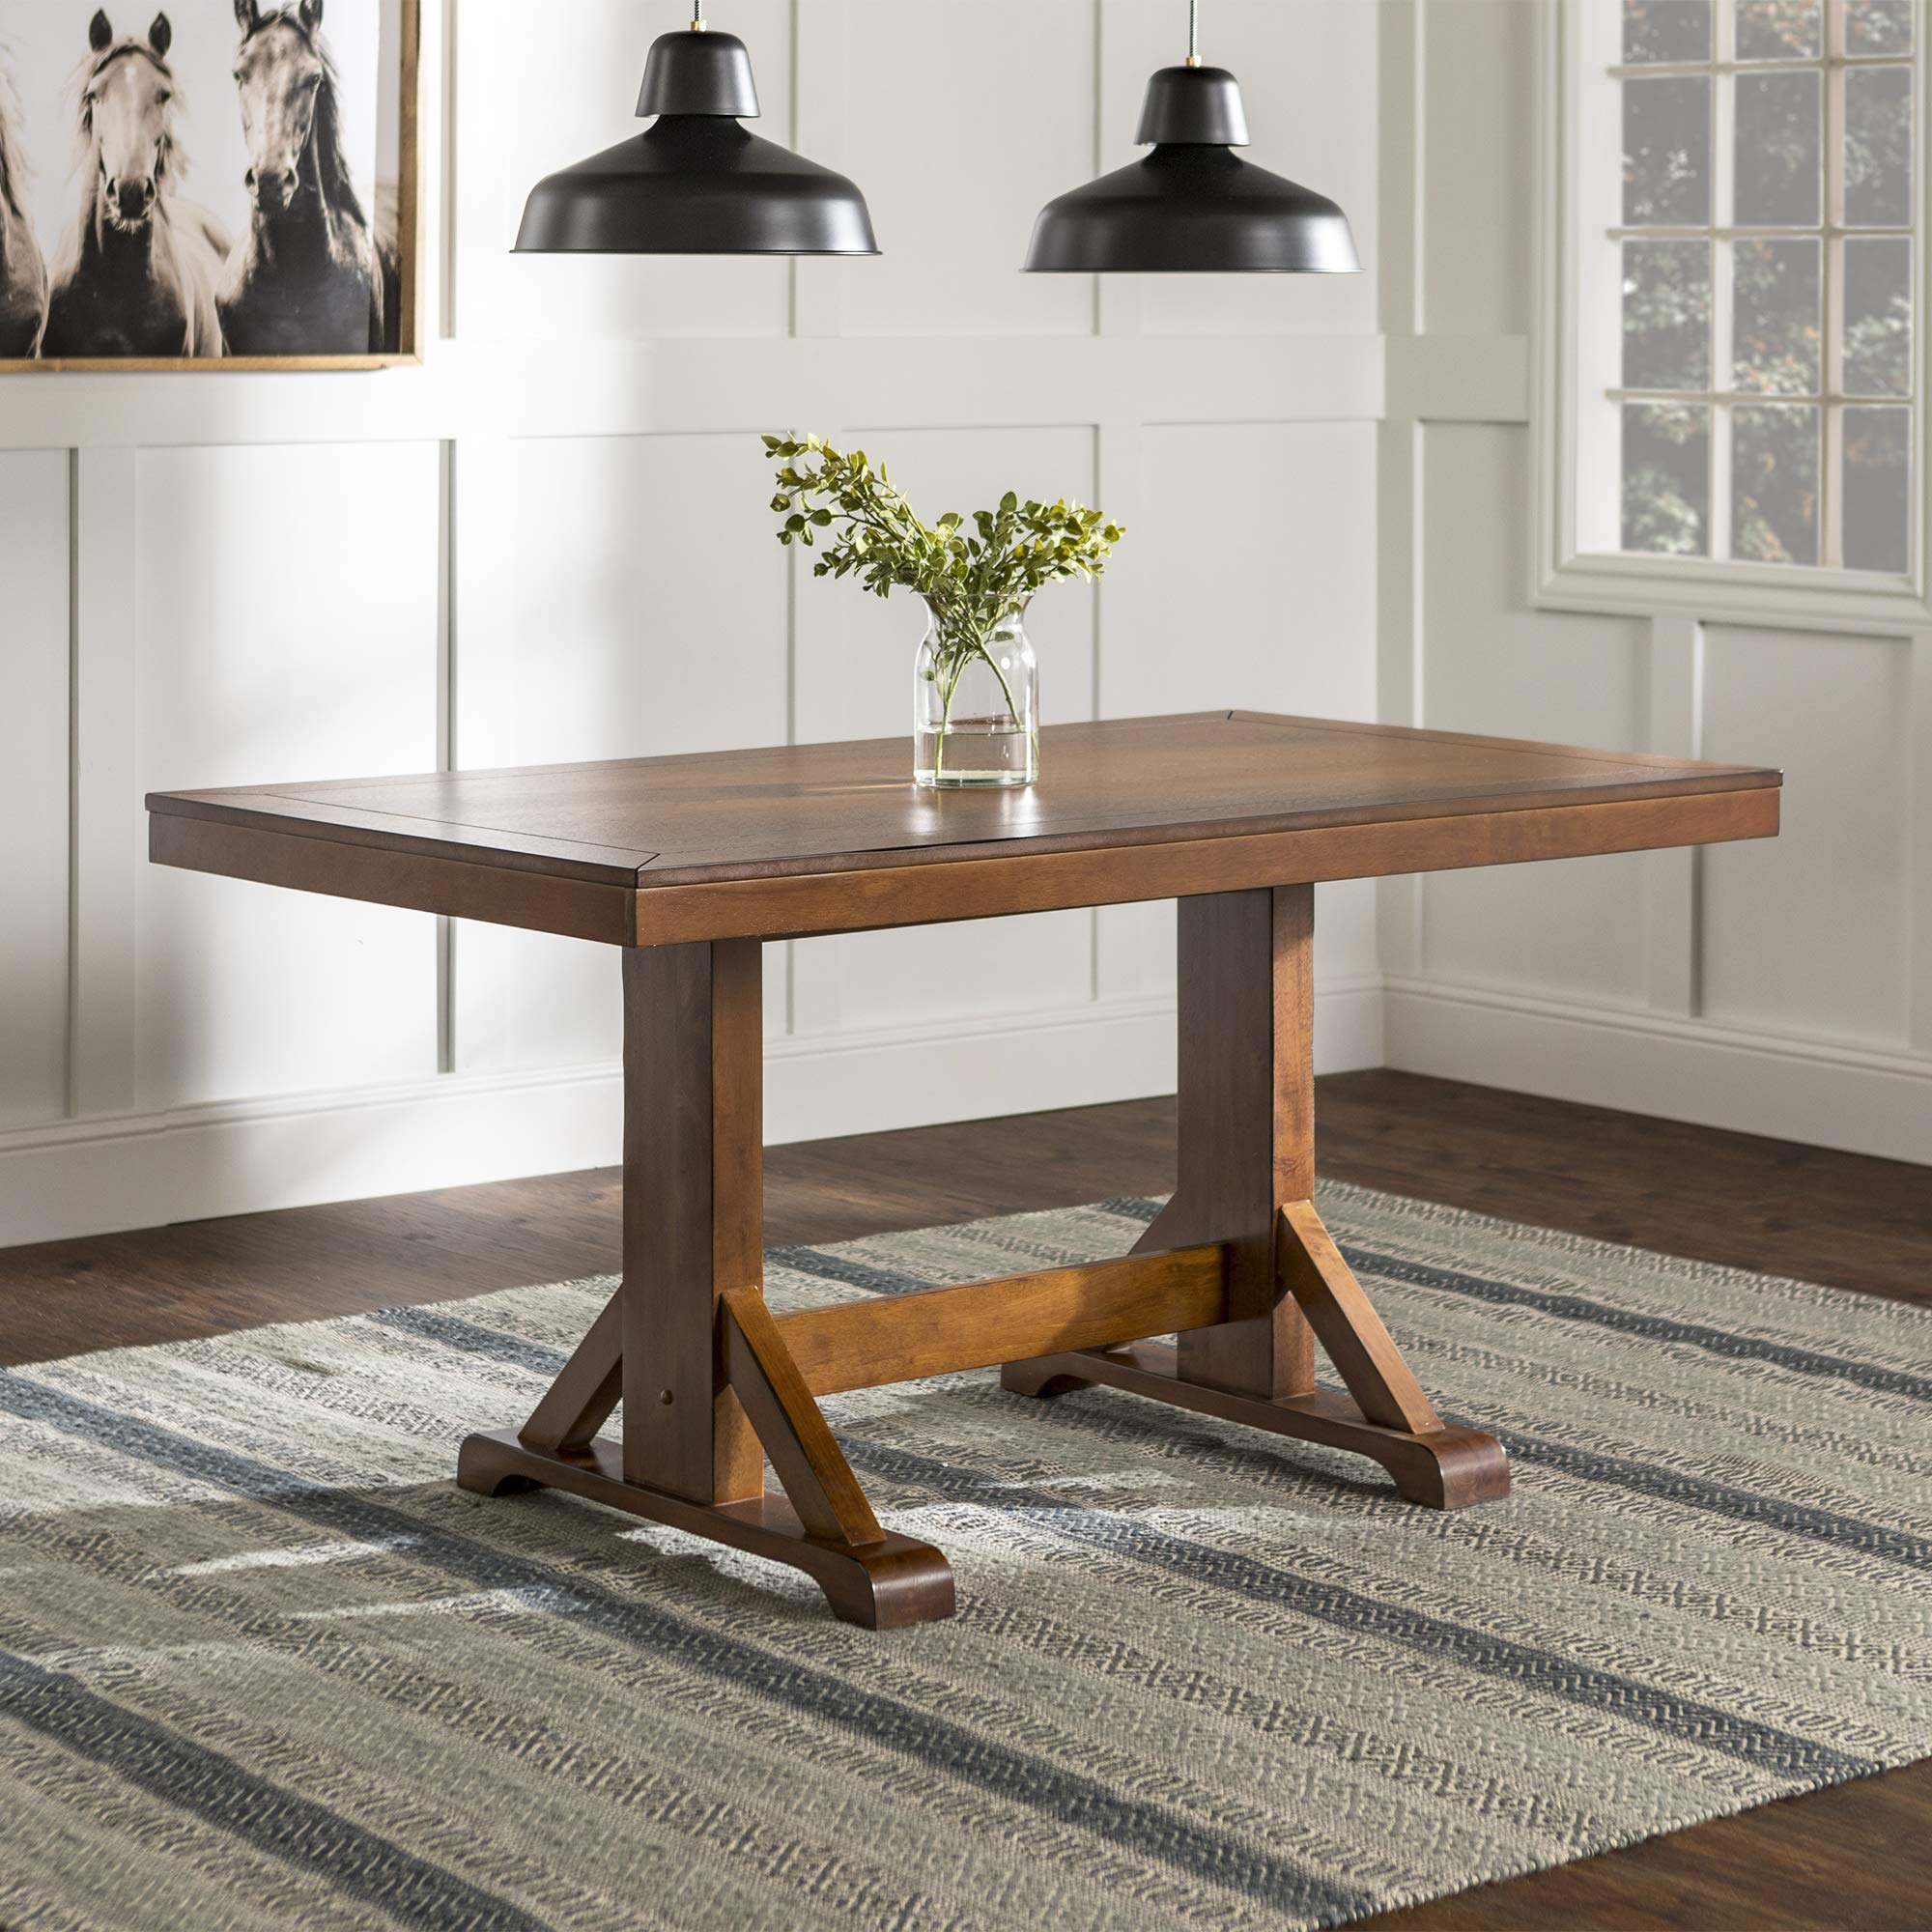 WE Furniture 60'' Millwright Wood Dining Table - Antique Brown by WE Furniture